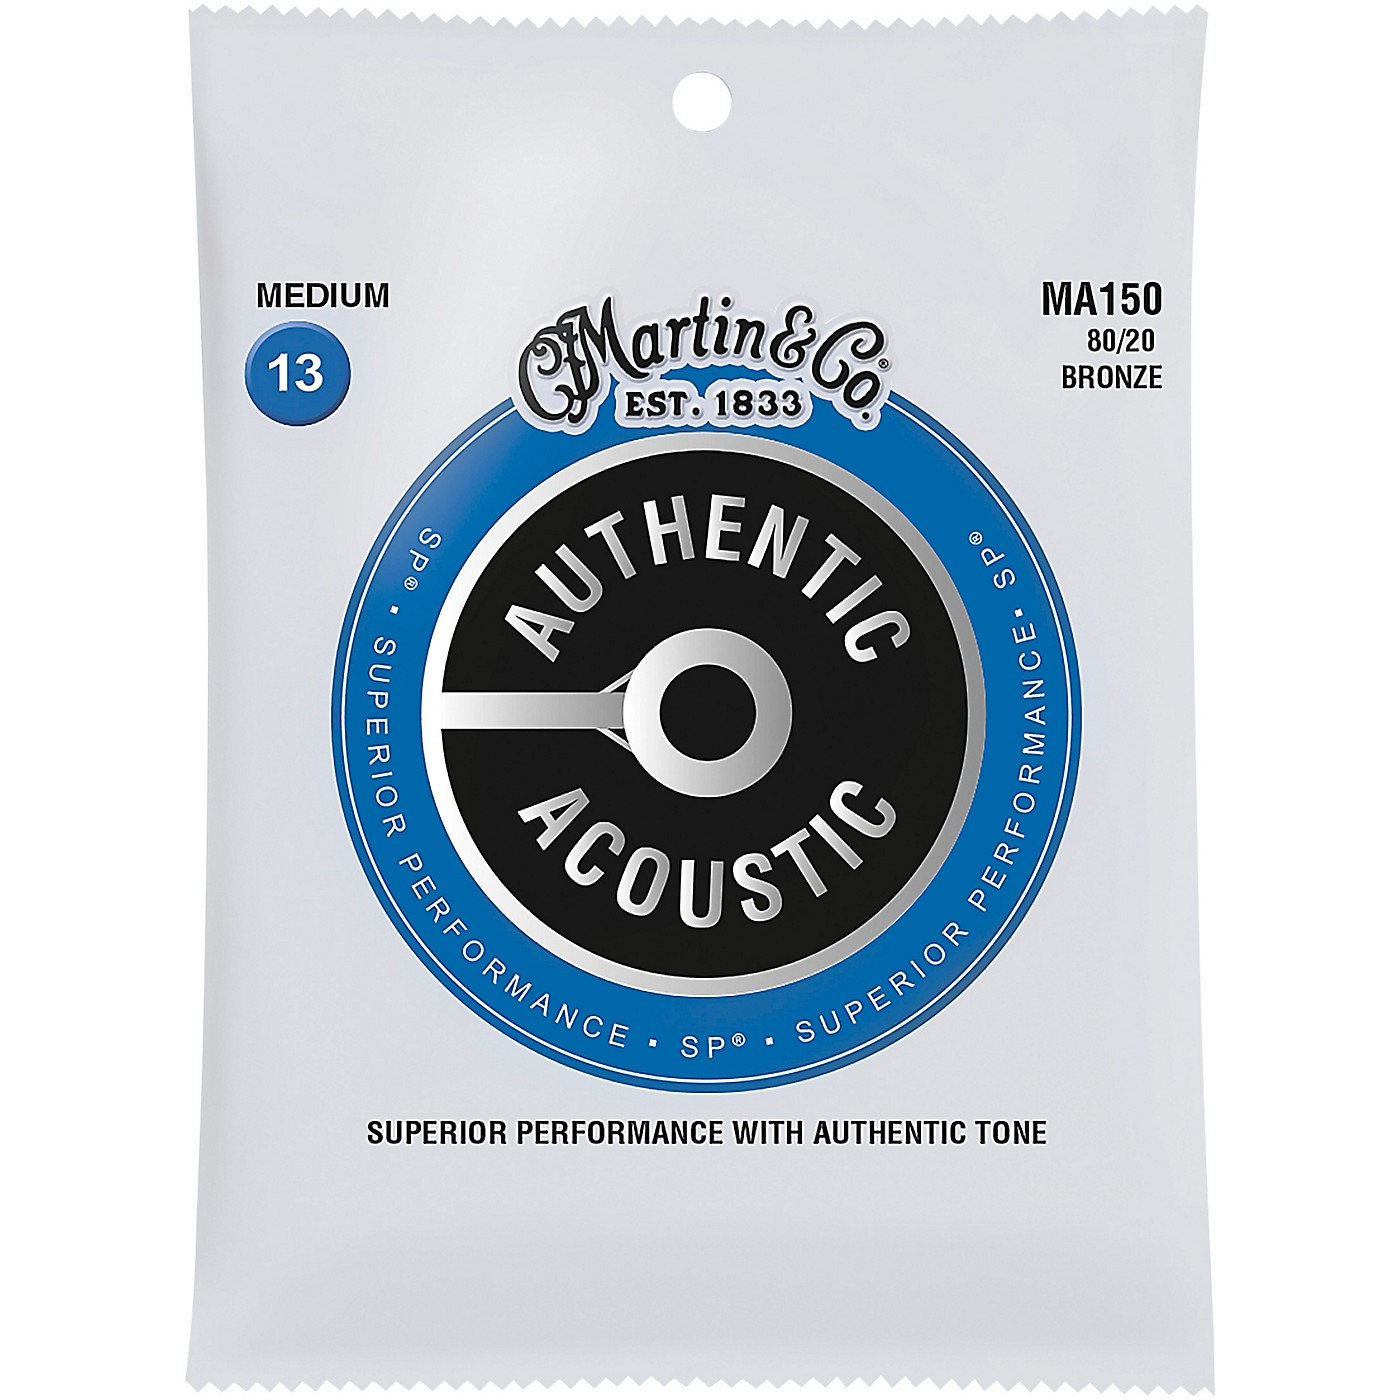 Martin MA150 SP 80/20 Bronze Medium Authentic Acoustic Guitar Strings thumbnail